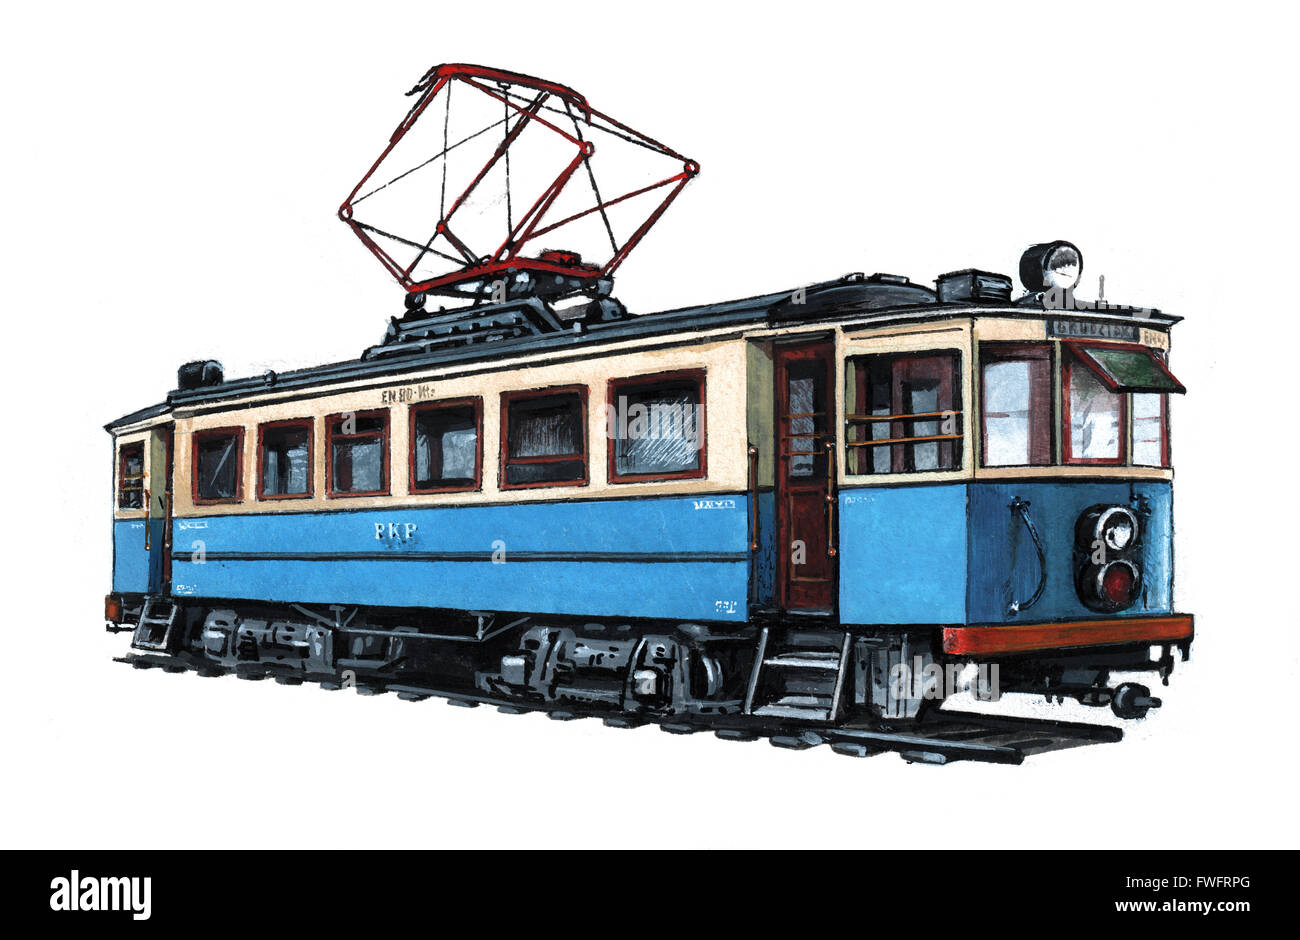 Illustration of an electric locomotive (EKD) by Bohdan Wroblewski - Stock Image